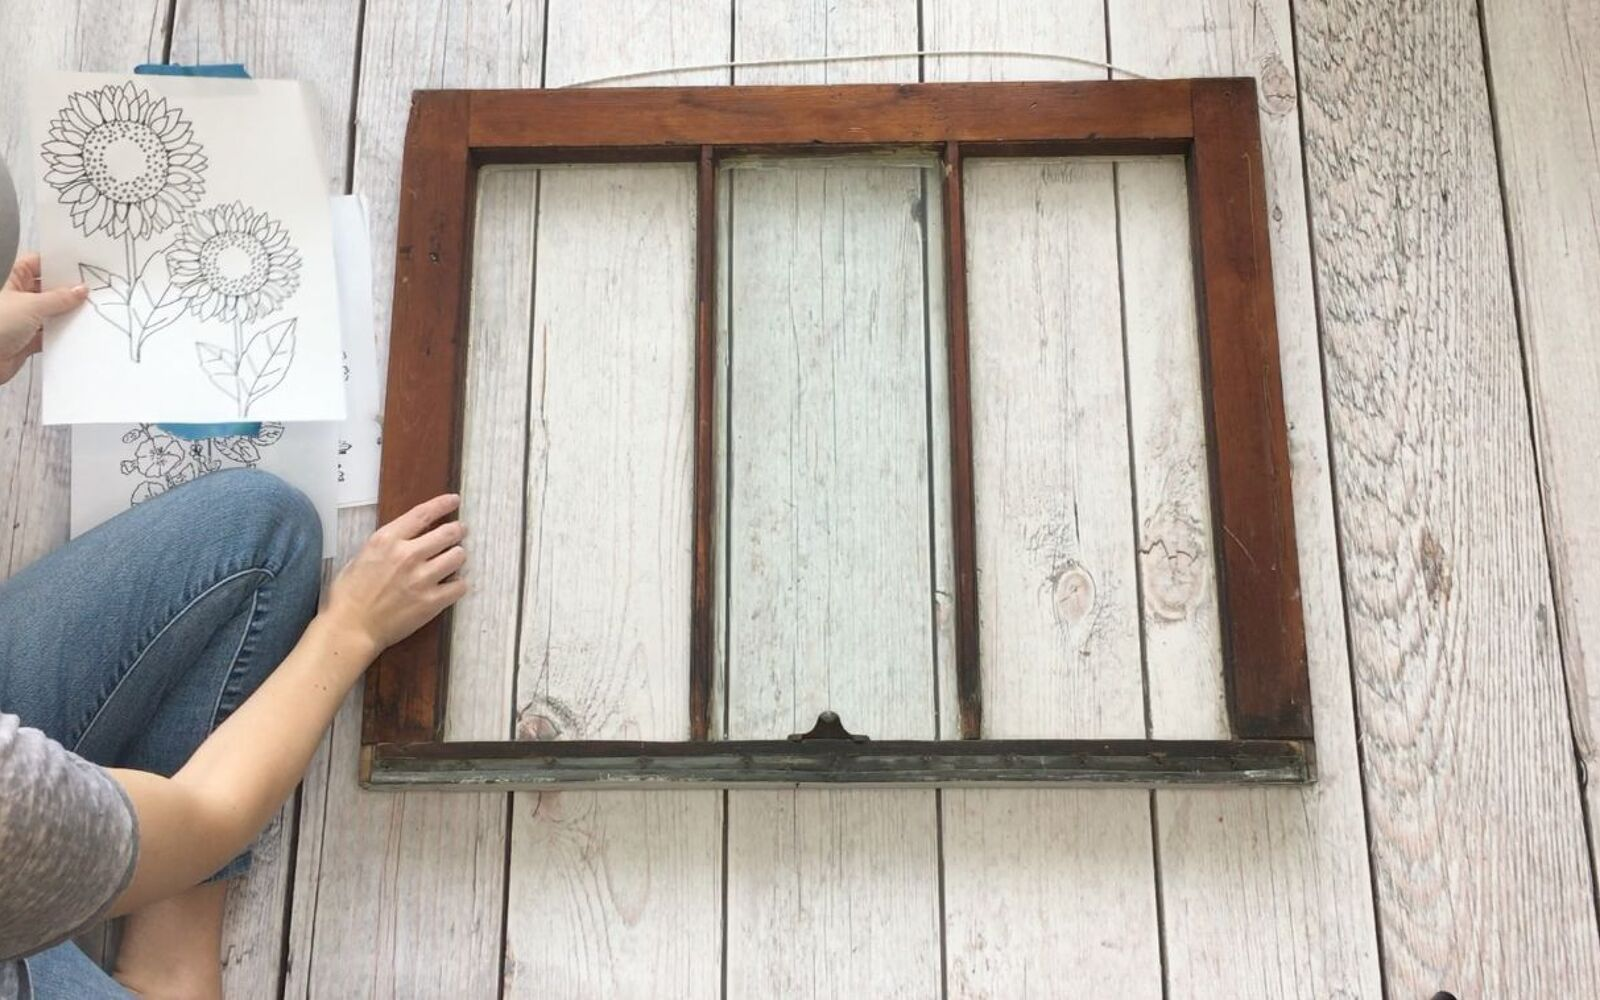 s 10 refreshing ways to avoid the see through in your glass, Step 1 Grab an old or unused window